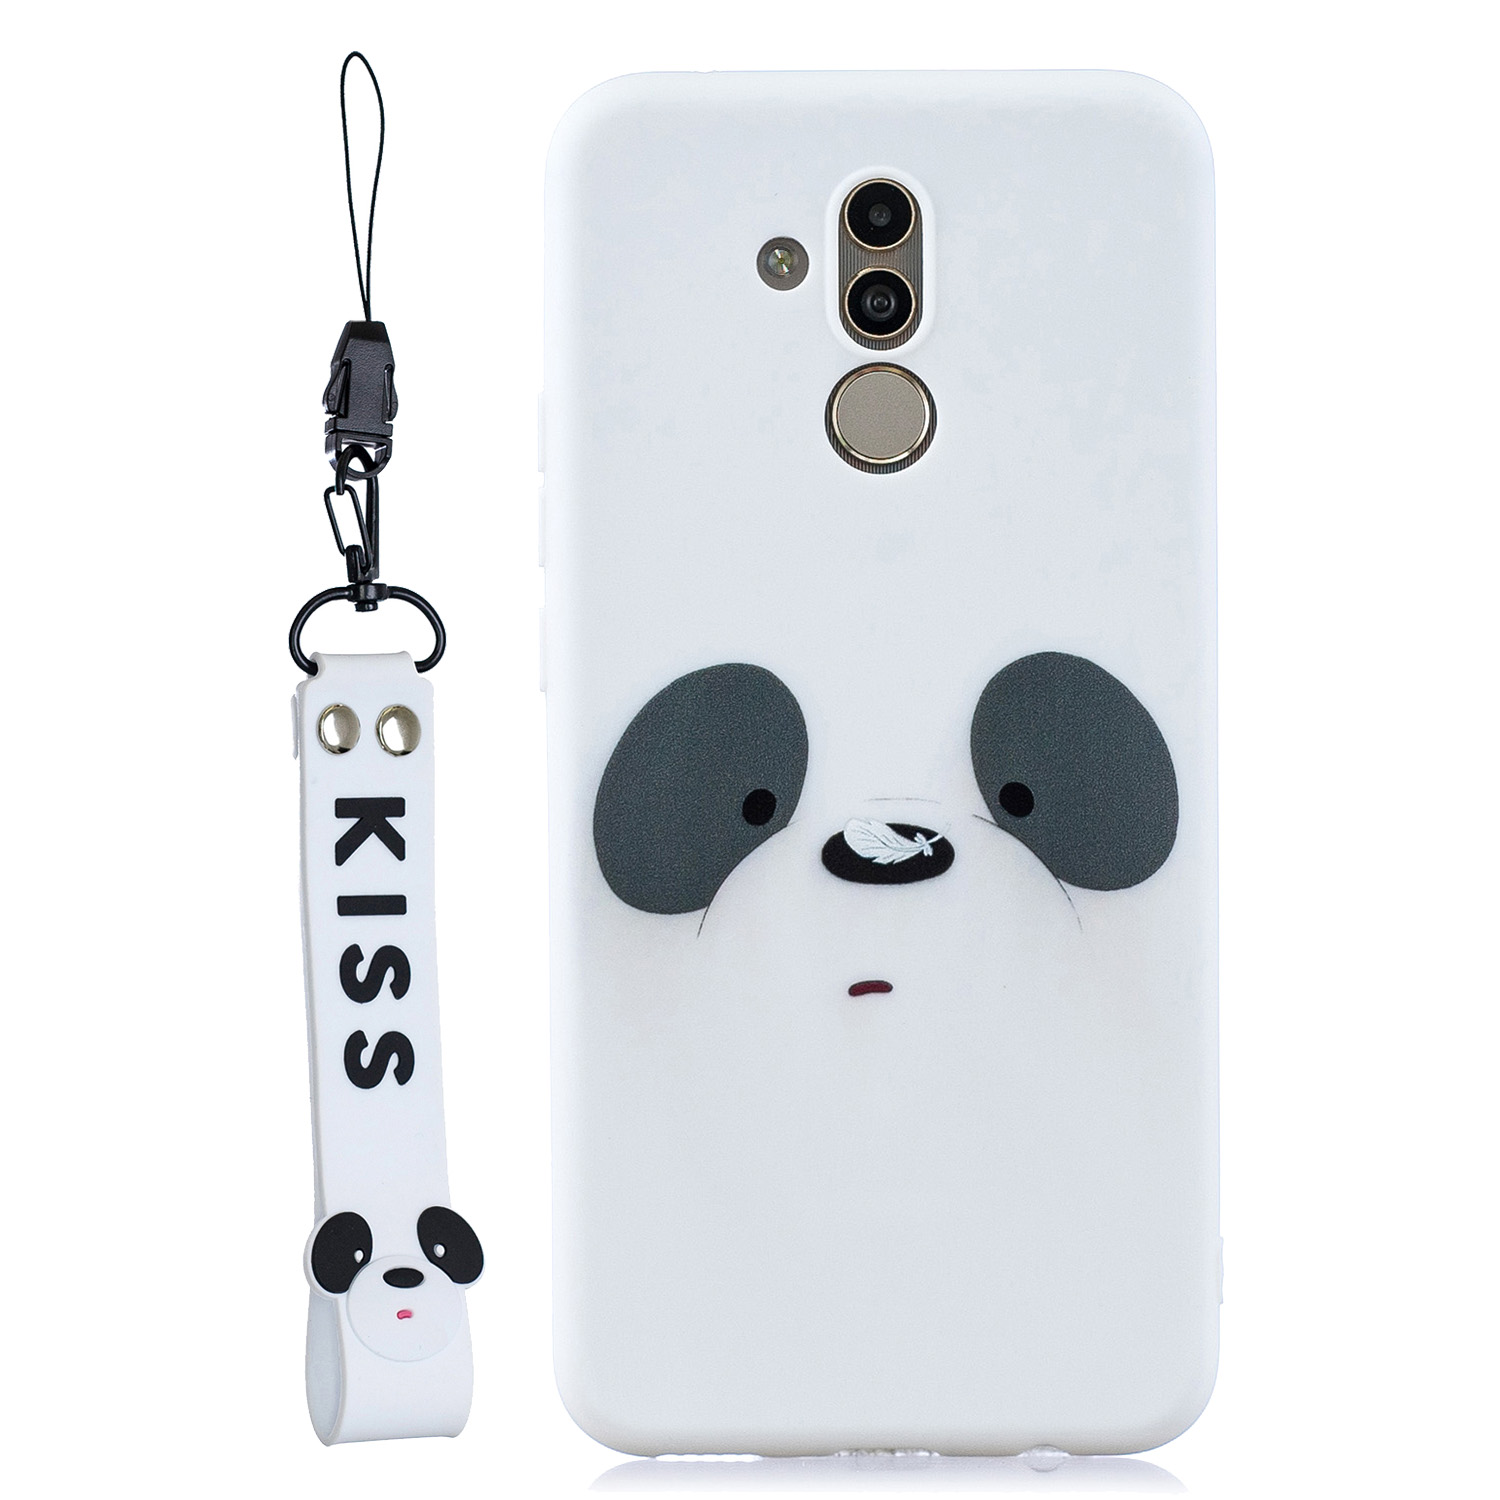 For HUAWEI MATE 20 lite/Maimang 7 Cute Coloured Painted TPU Anti-scratch Non-slip Protective Cover Back Case with Lanyard